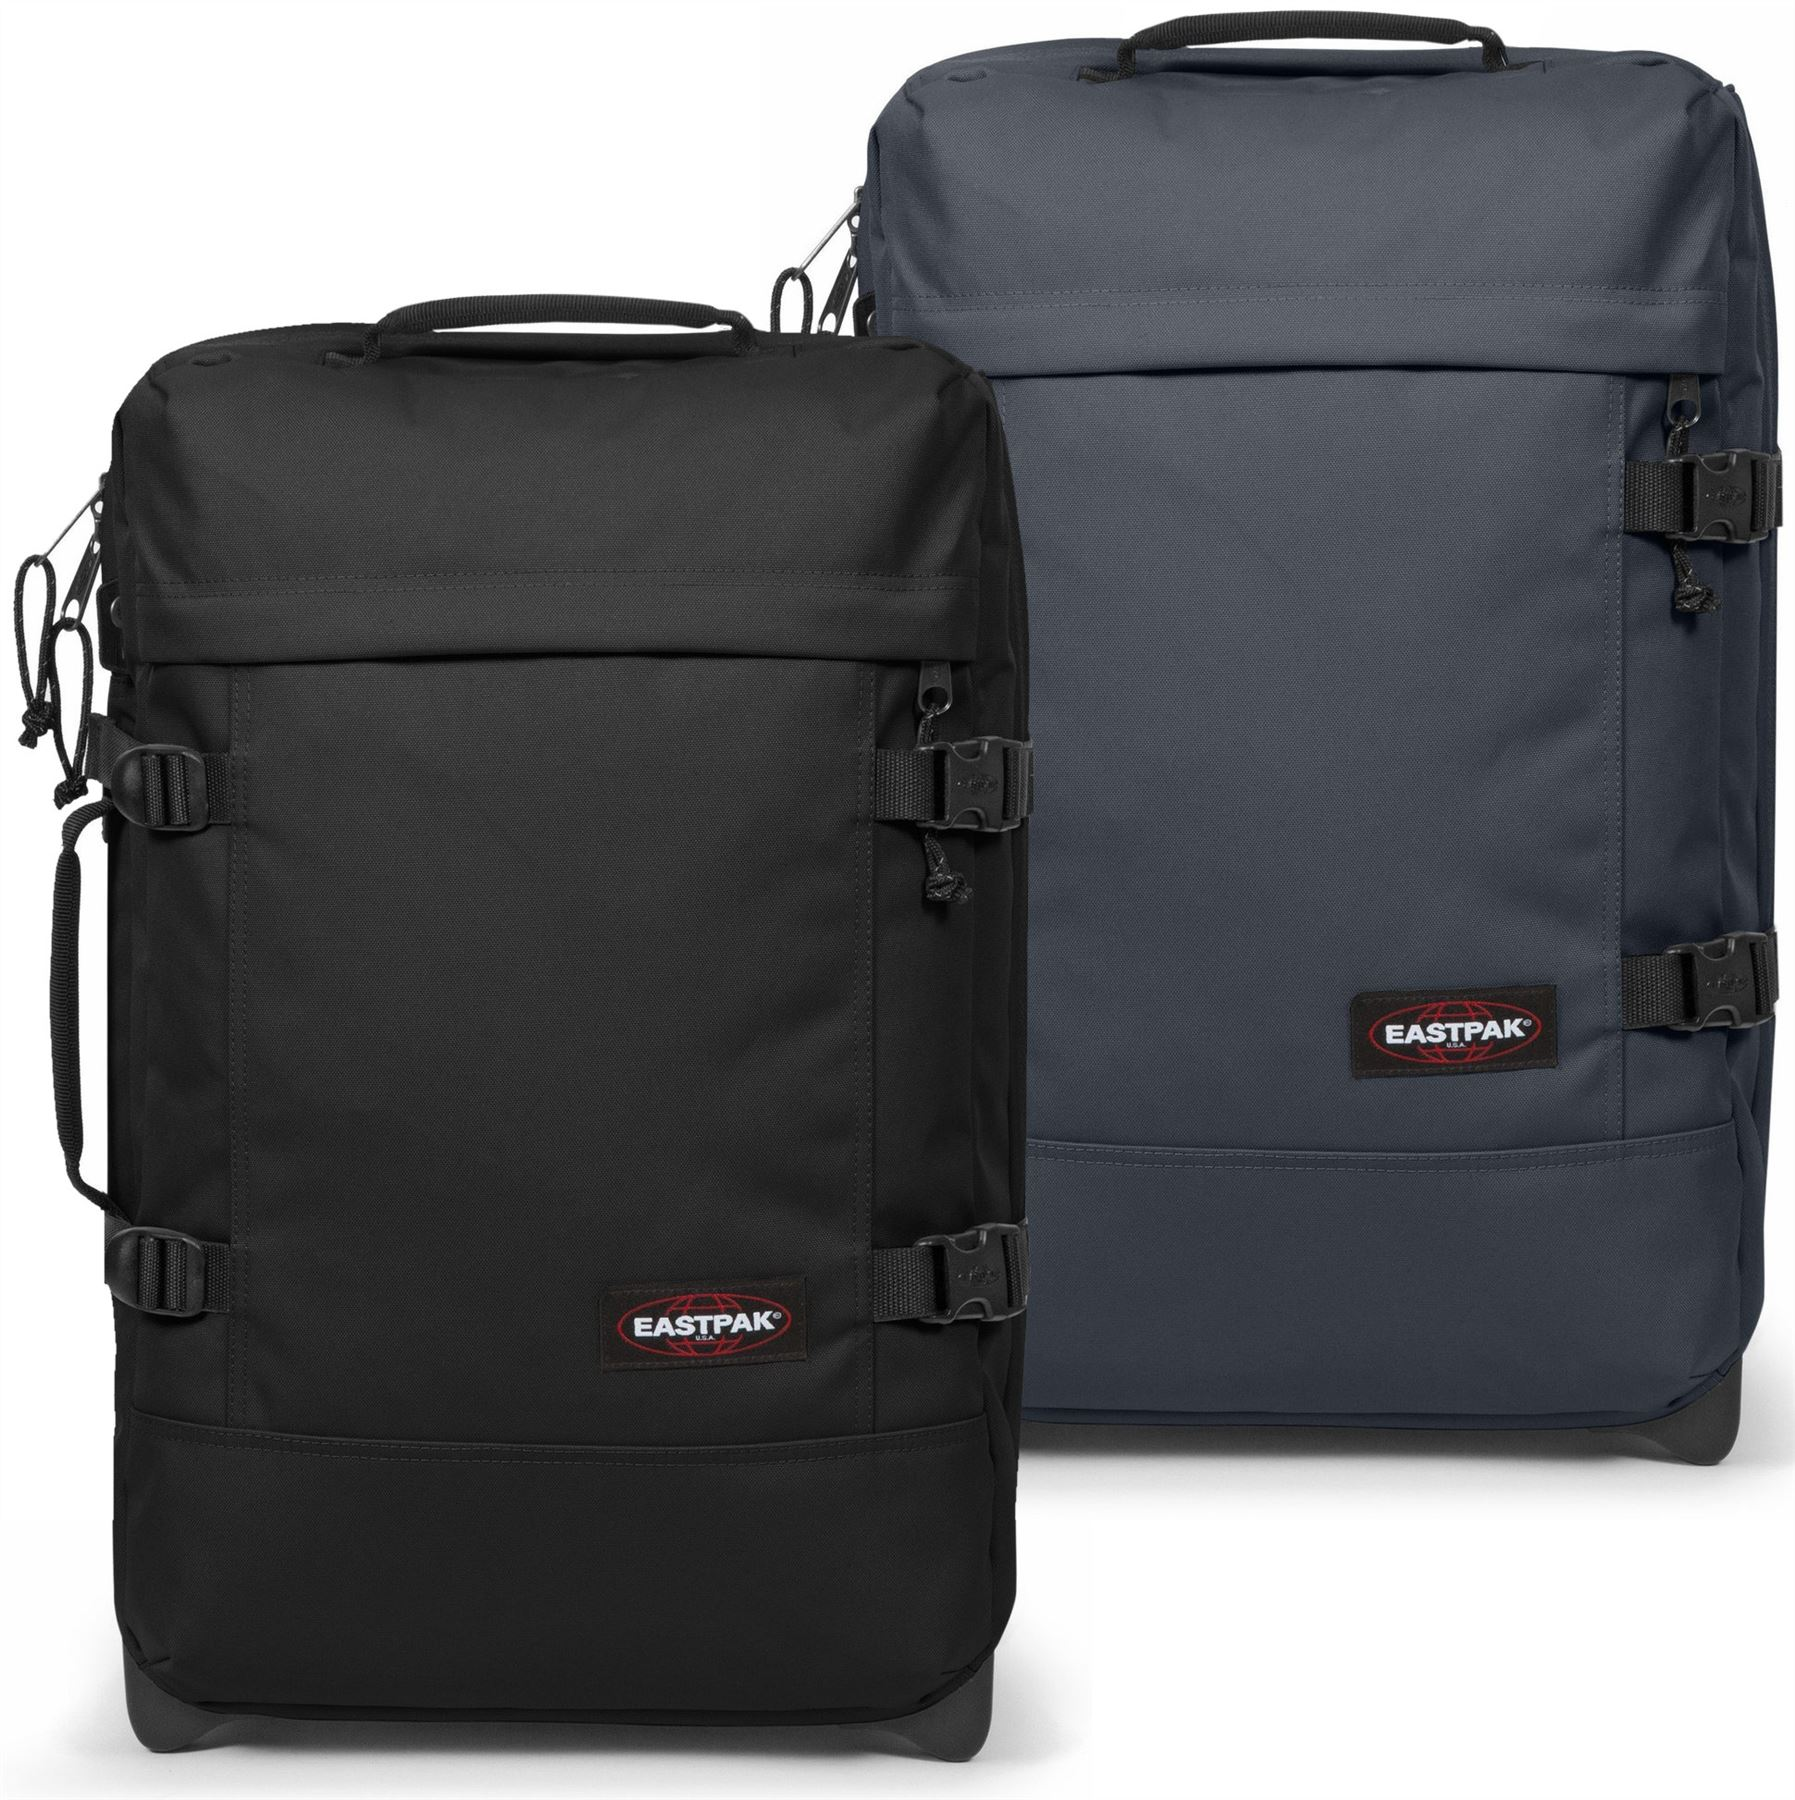 Eastpak Tranverz S Details About Eastpak Tranverz S Cabin Luggage Case Black Blue